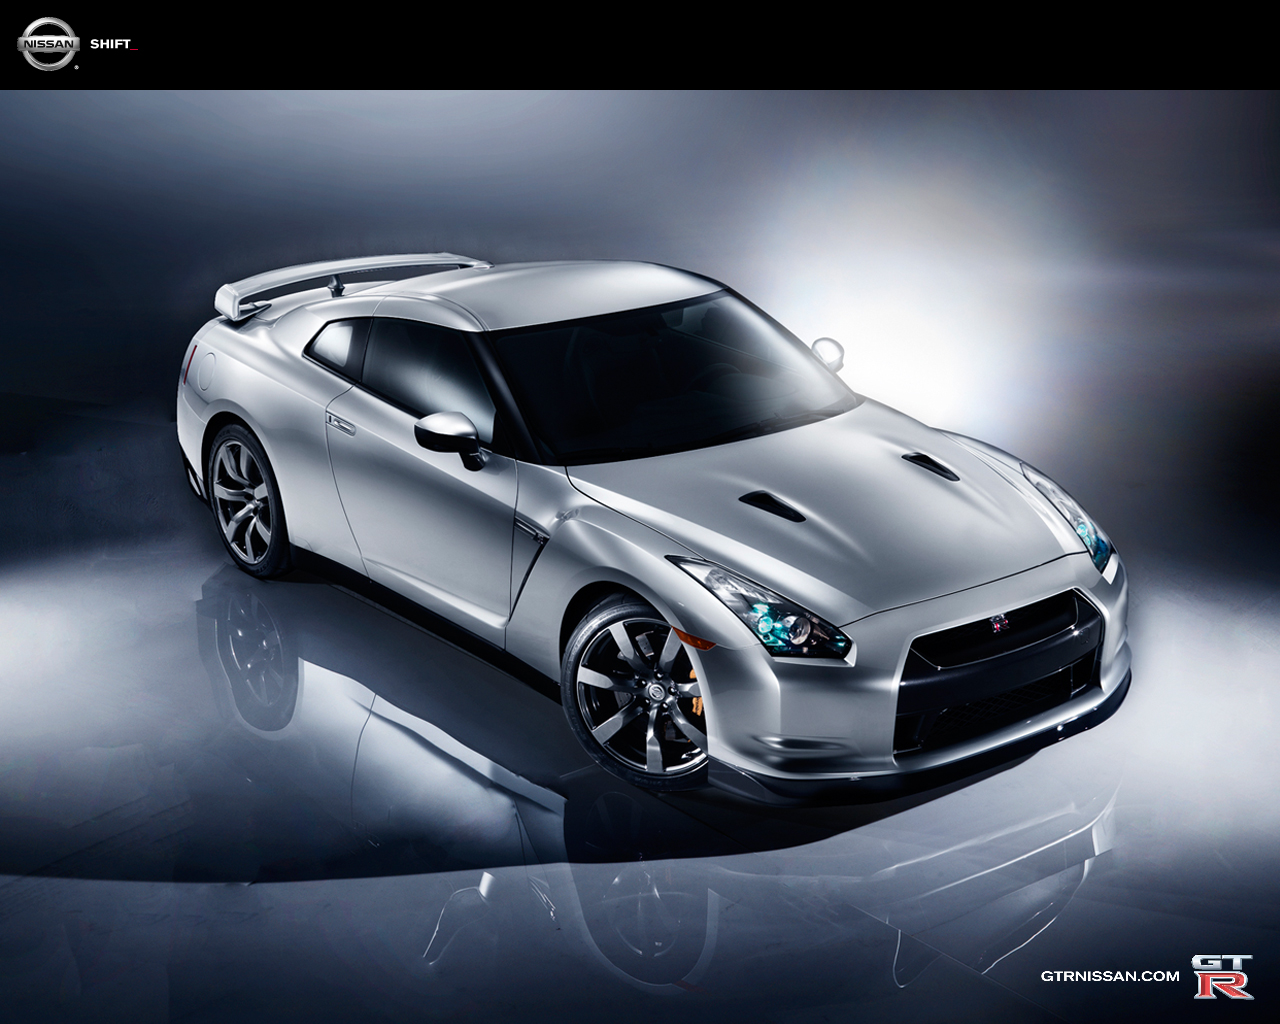 SPORTS CARS WALLPAPERS NISSAN CAR WALLPAPER 1280x1024